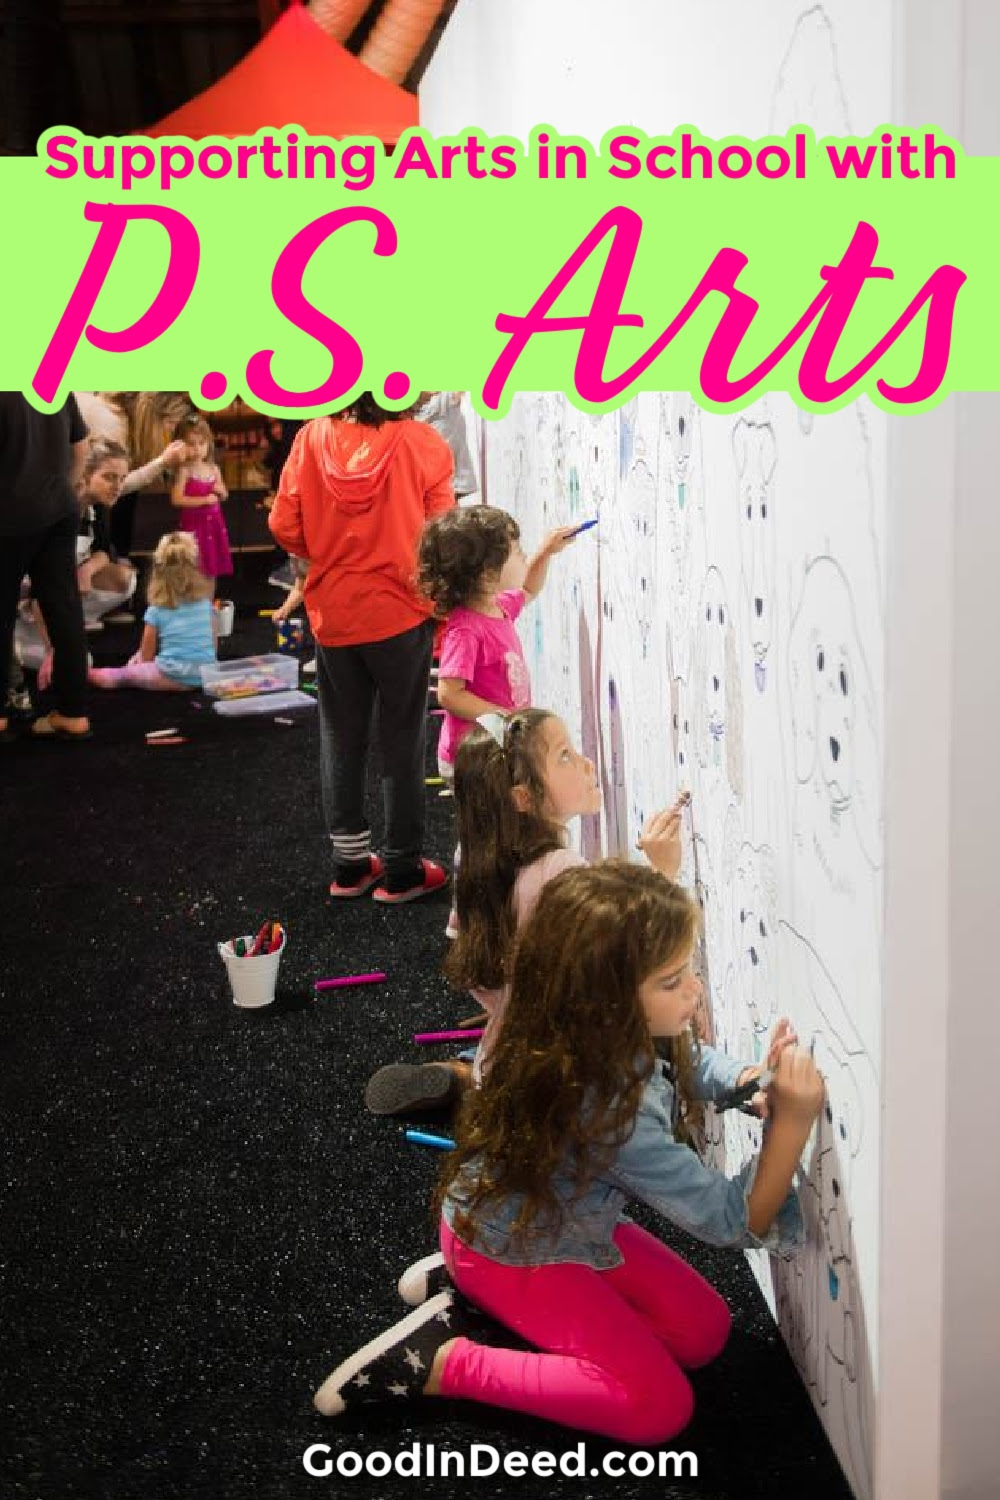 Supporting PS Arts space in schools is especially important as it gives underfunded schools the chance to teach art in many ways.